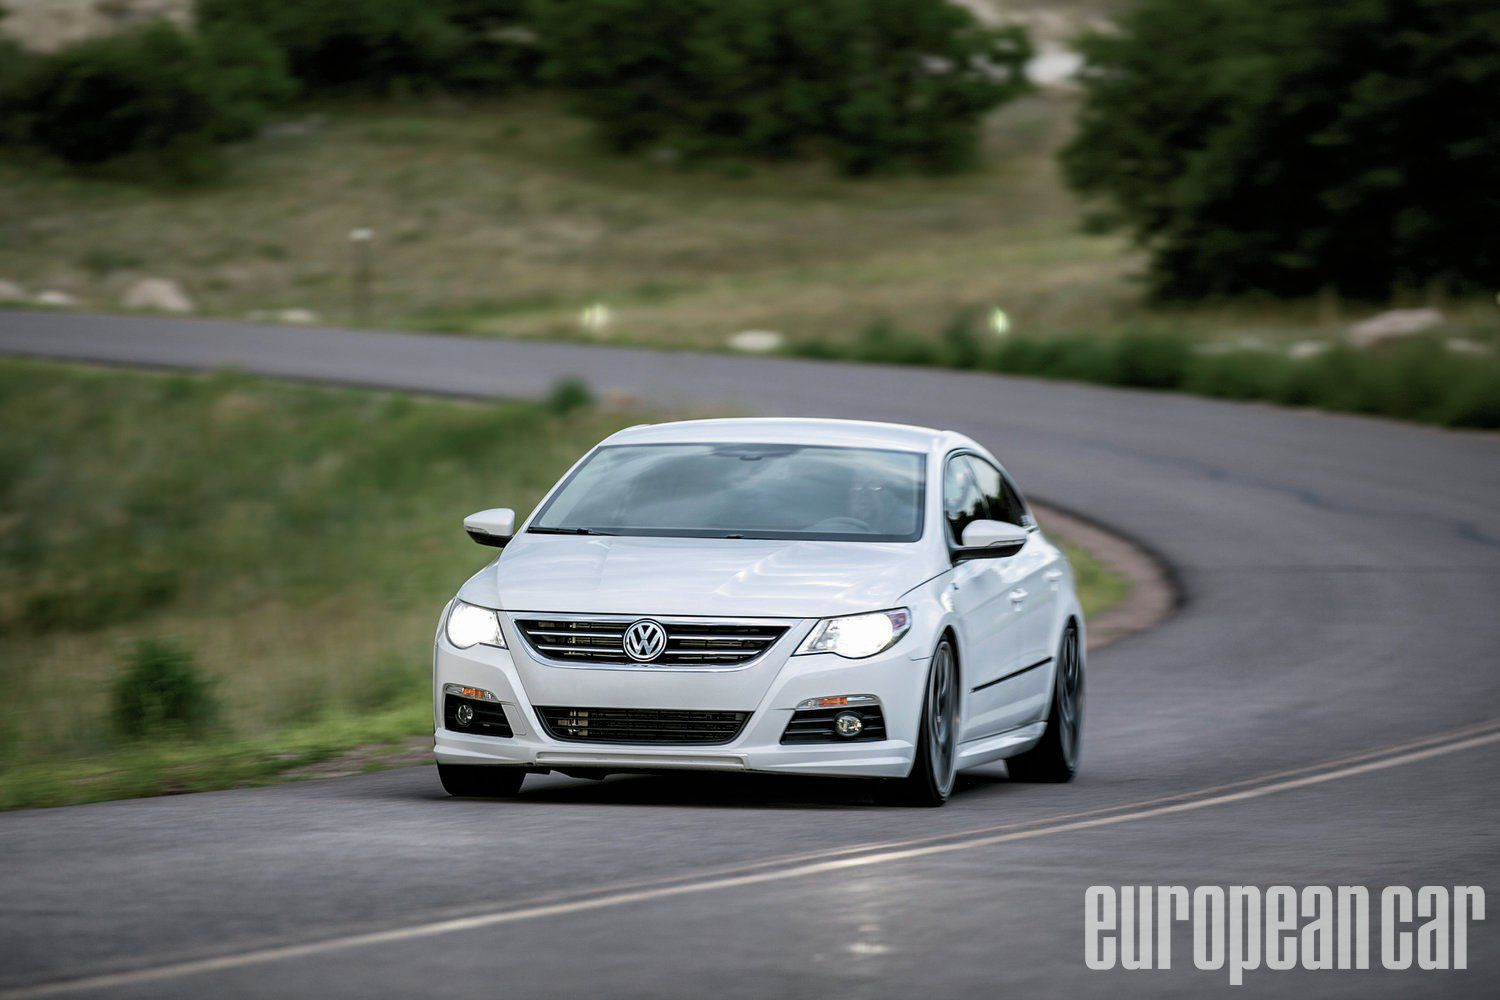 2012 Volkswagen CC European Car Magazine